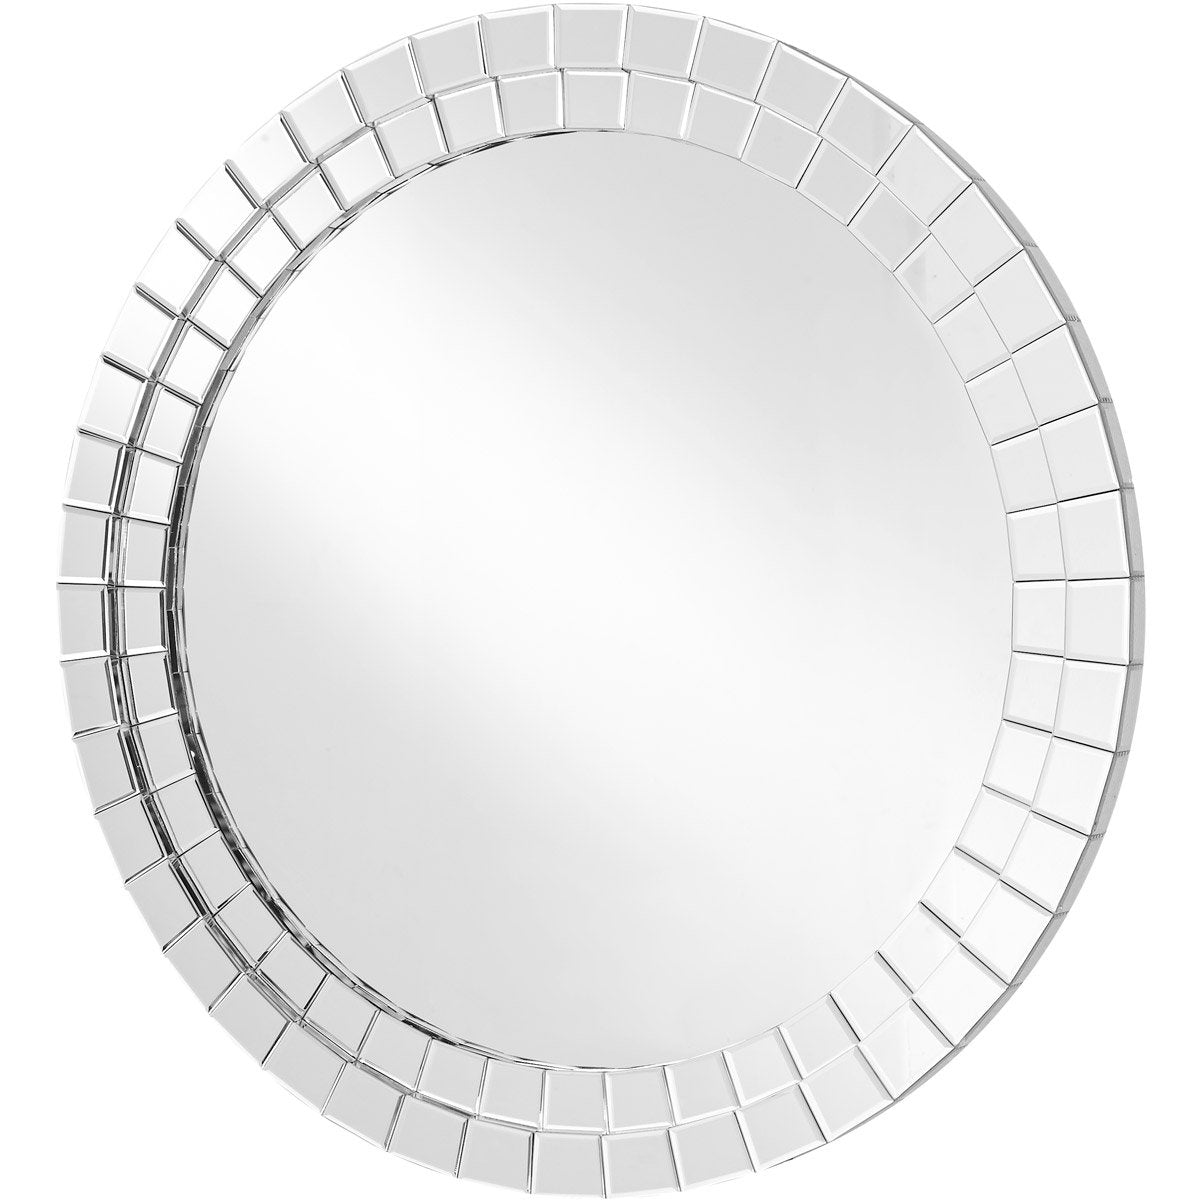 Sparkle 39.5 X 39.5 Contemporary Mirror - Clear Finish (Mr9150) Mirror